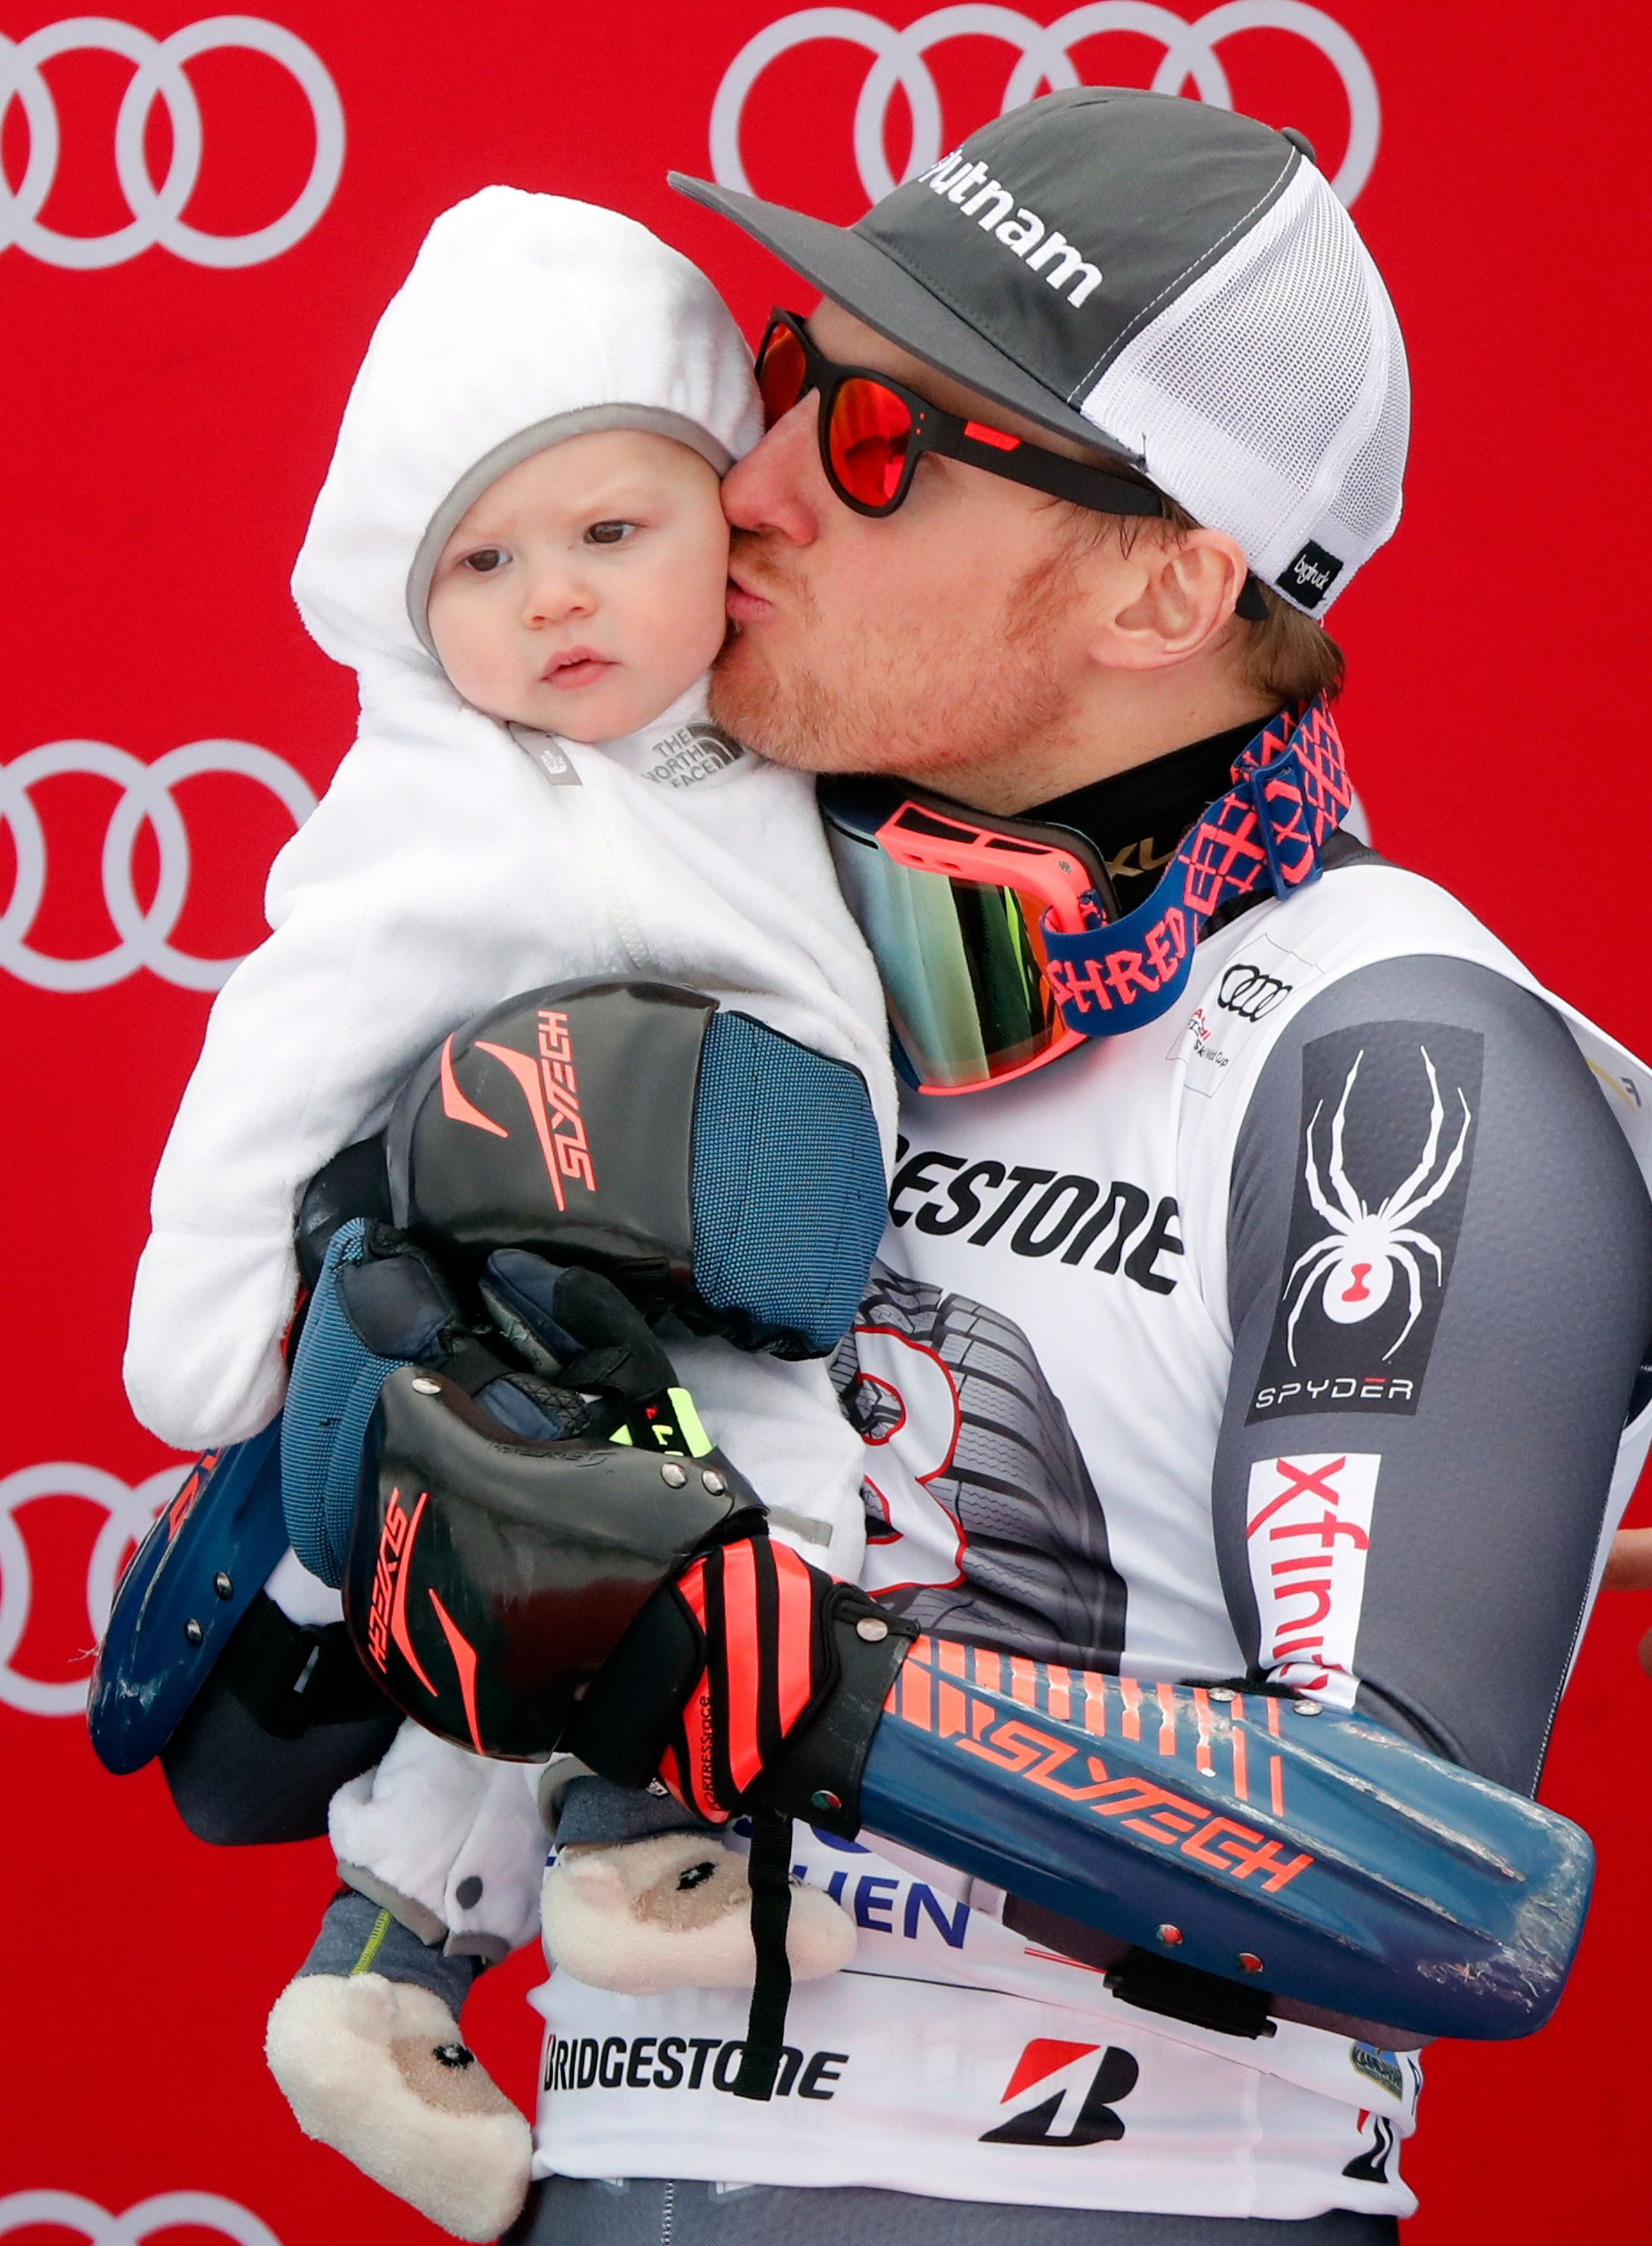 Alpine Skiing - FIS Alpine Skiing World Cup - Men's Giant Slalom - Garmisch-Partenkirchen, Germany - January 28, 2018 - Ted Ligety from the U.S. kisses his baby Jax on the podium. REUTERS/Wolfgang Rattay